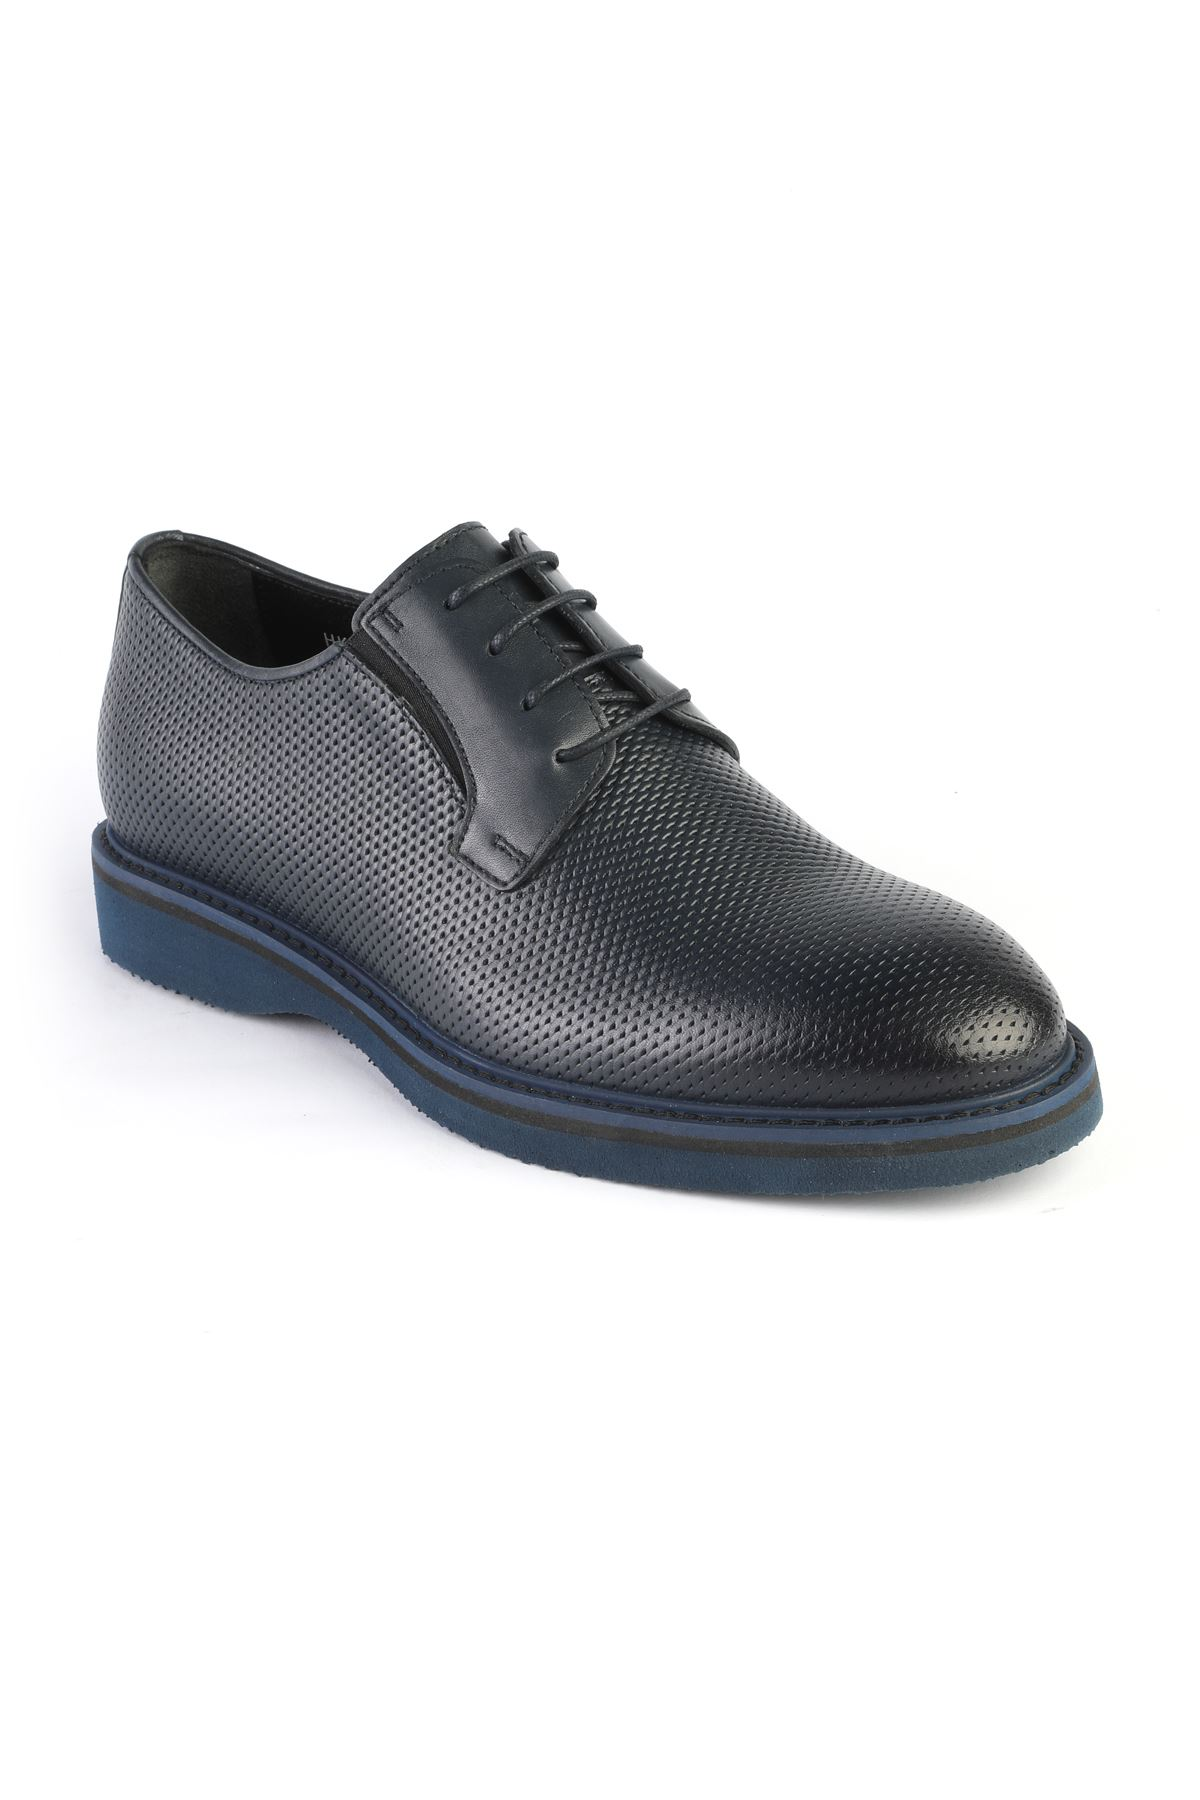 Libero 3261 Navy Blue Casual Shoes